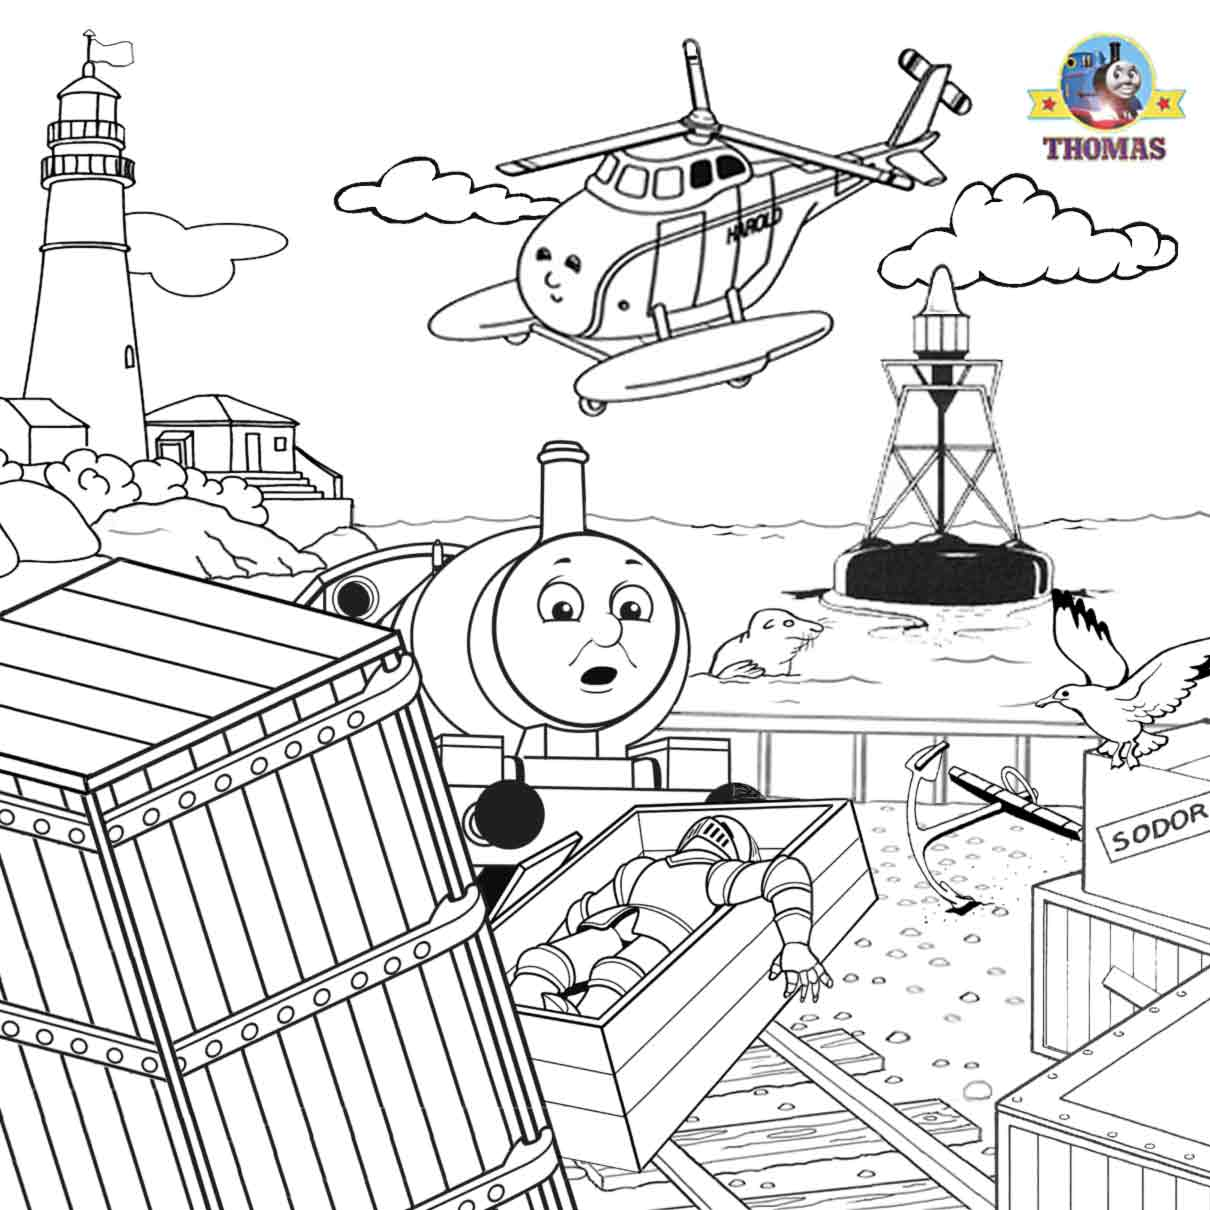 Steam Engine Drawing at GetDrawings.com | Free for personal use ...